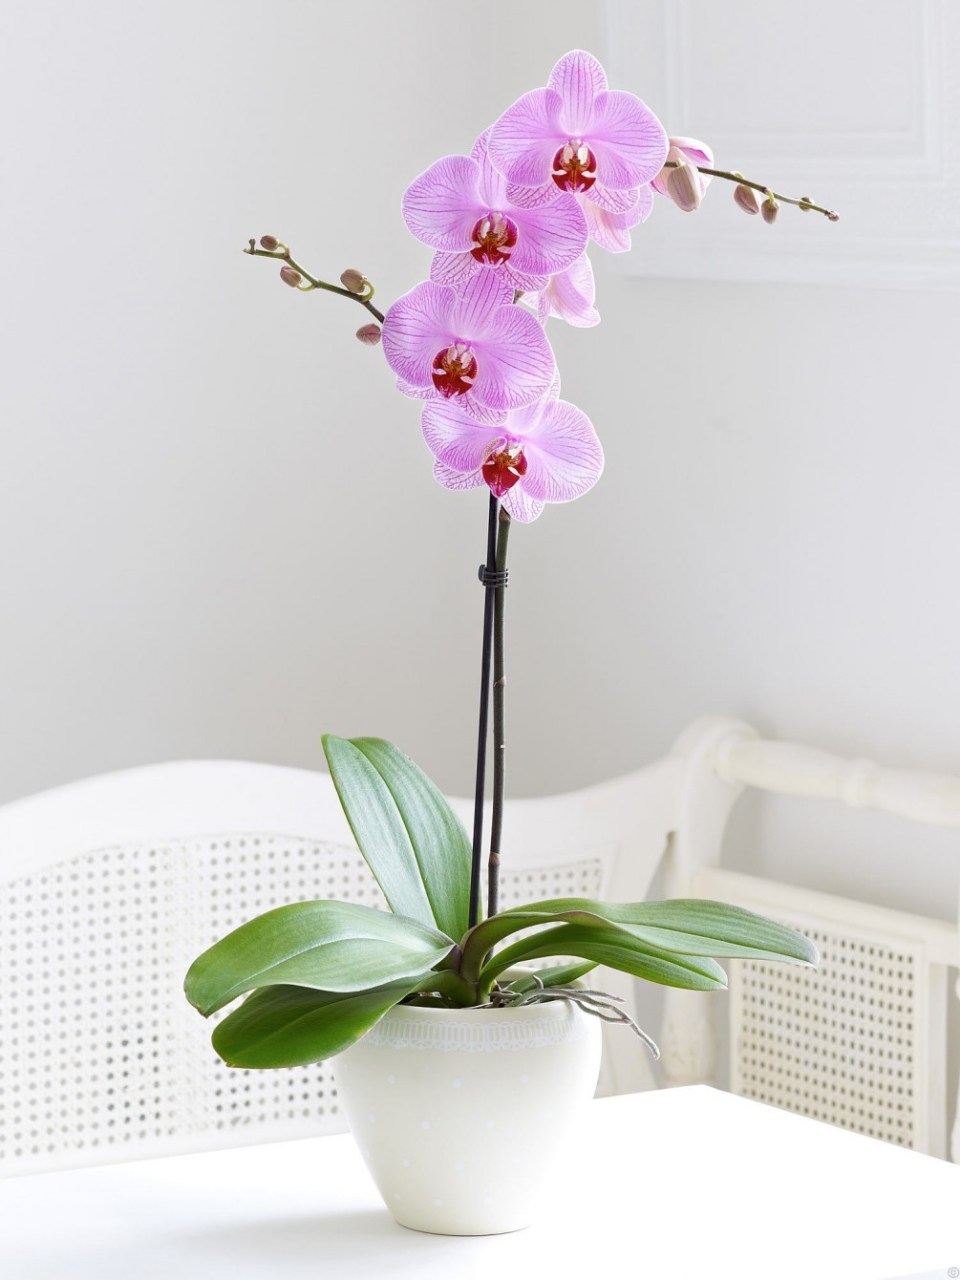 Phalenopsis orchids | Winter Flower Garden Indoors: Blooming Plants to Grow In the House during Cold Weather Months | FarmFoodFamily.com